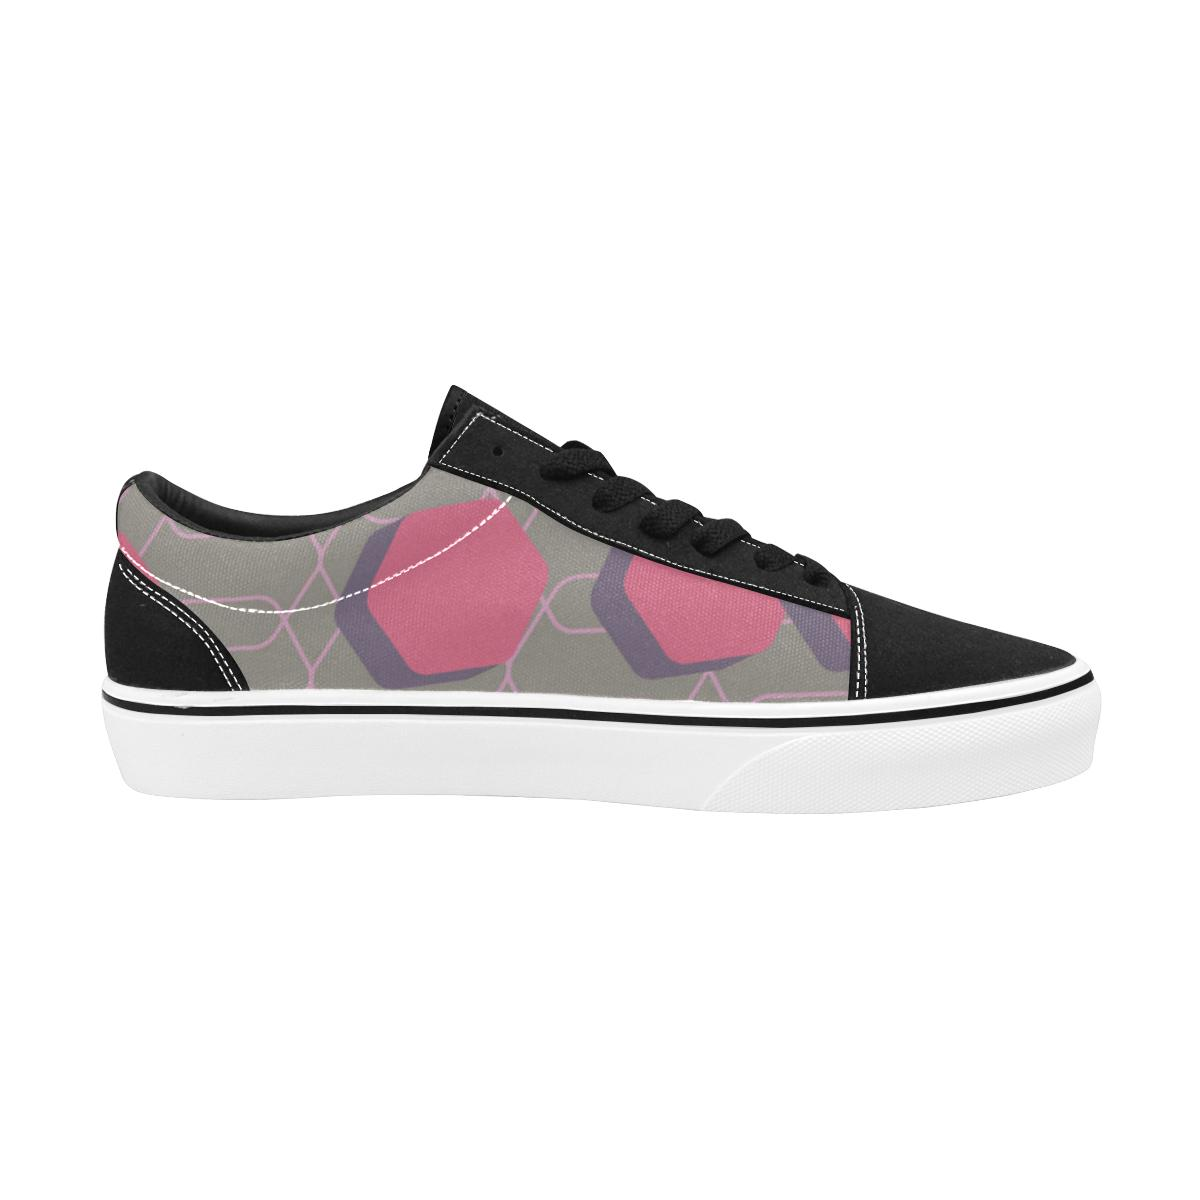 Women's Lace-Up Wakerlook Canvas Shoes